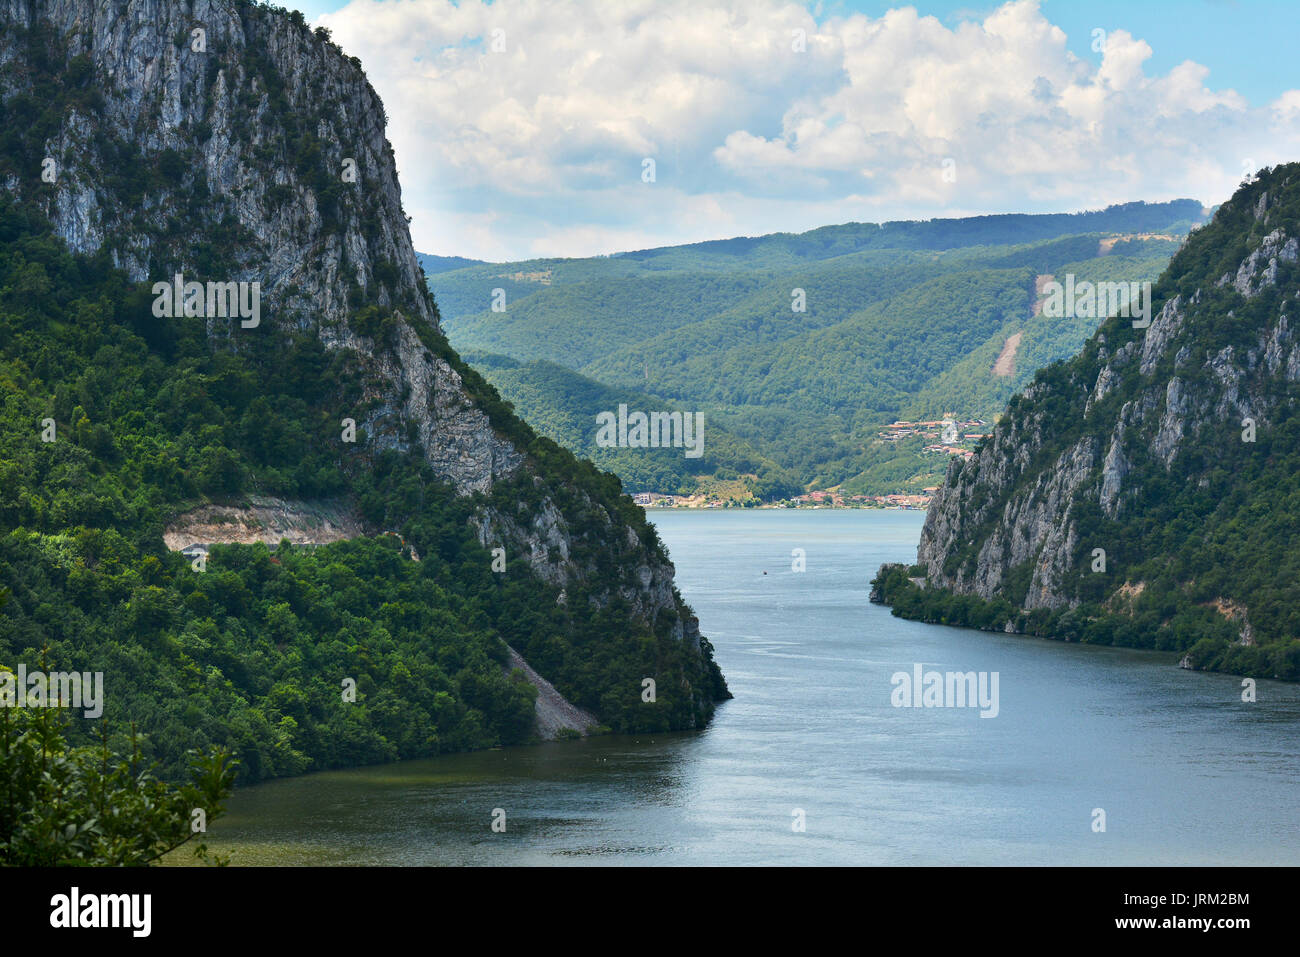 danube between mountains and - photo #4